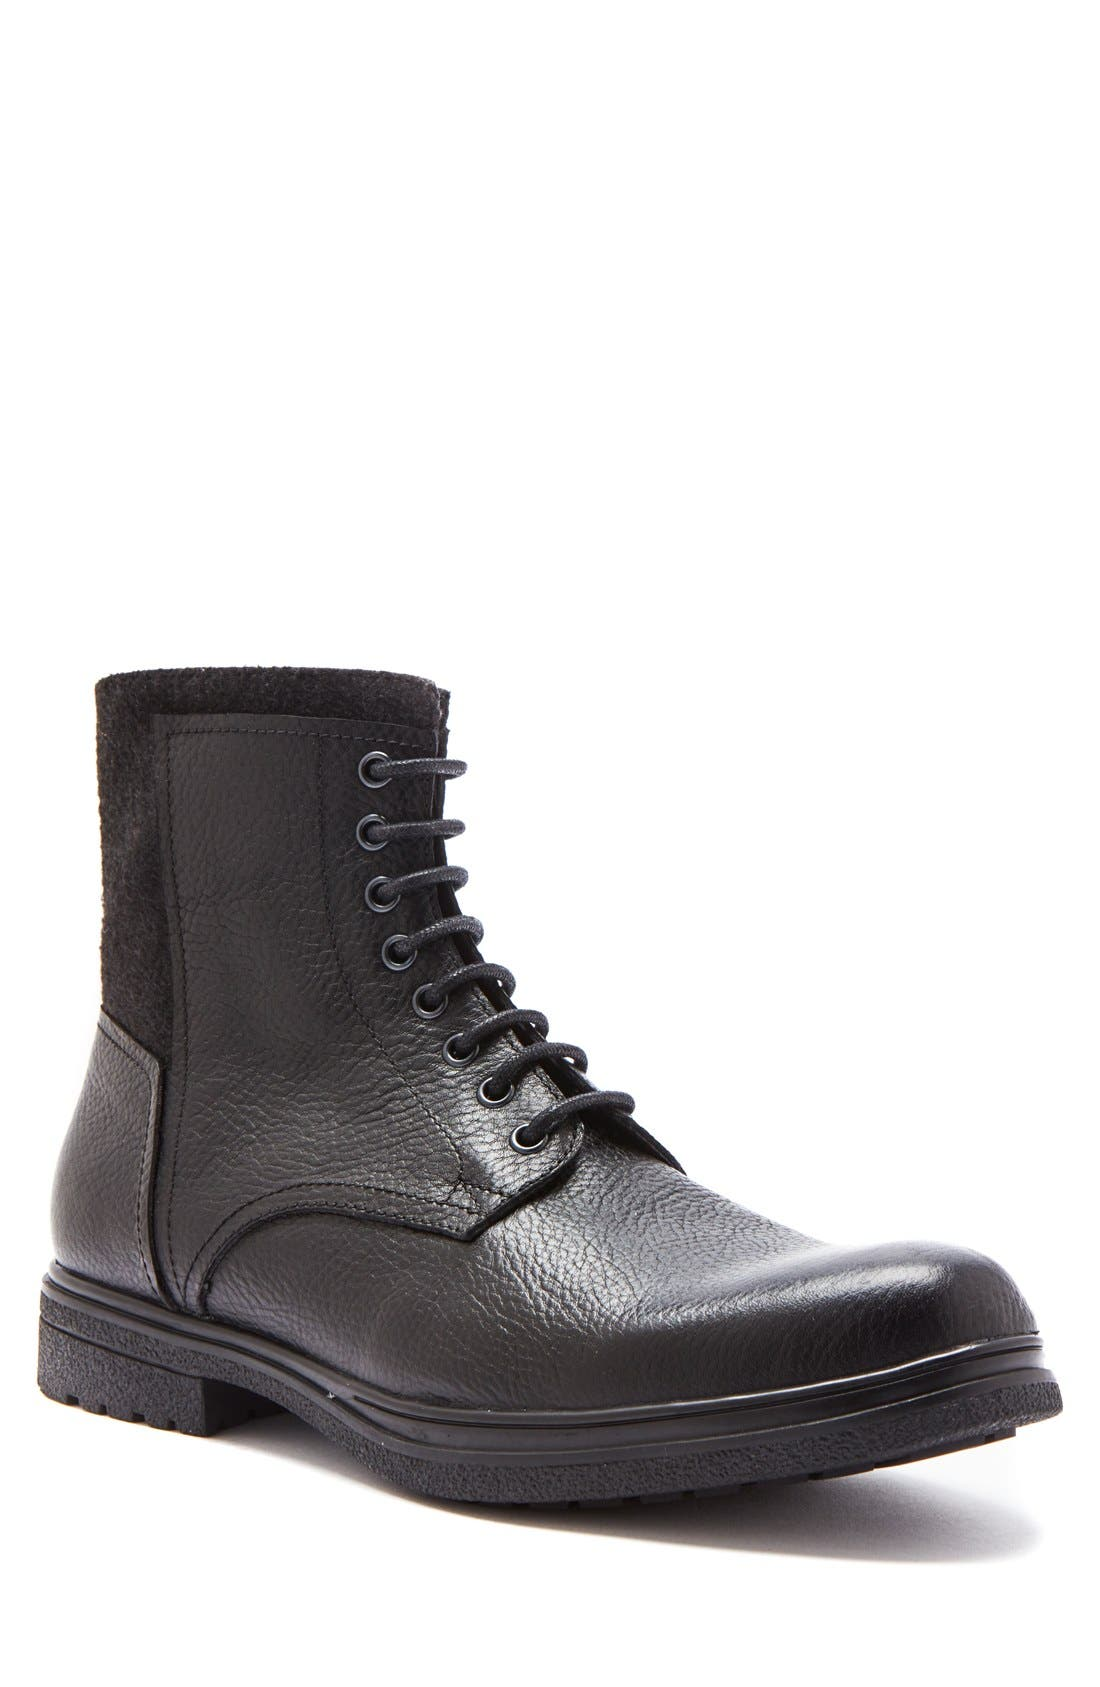 'Backoff' Waterproof Plain Toe Boot,                         Main,                         color, Black Leather